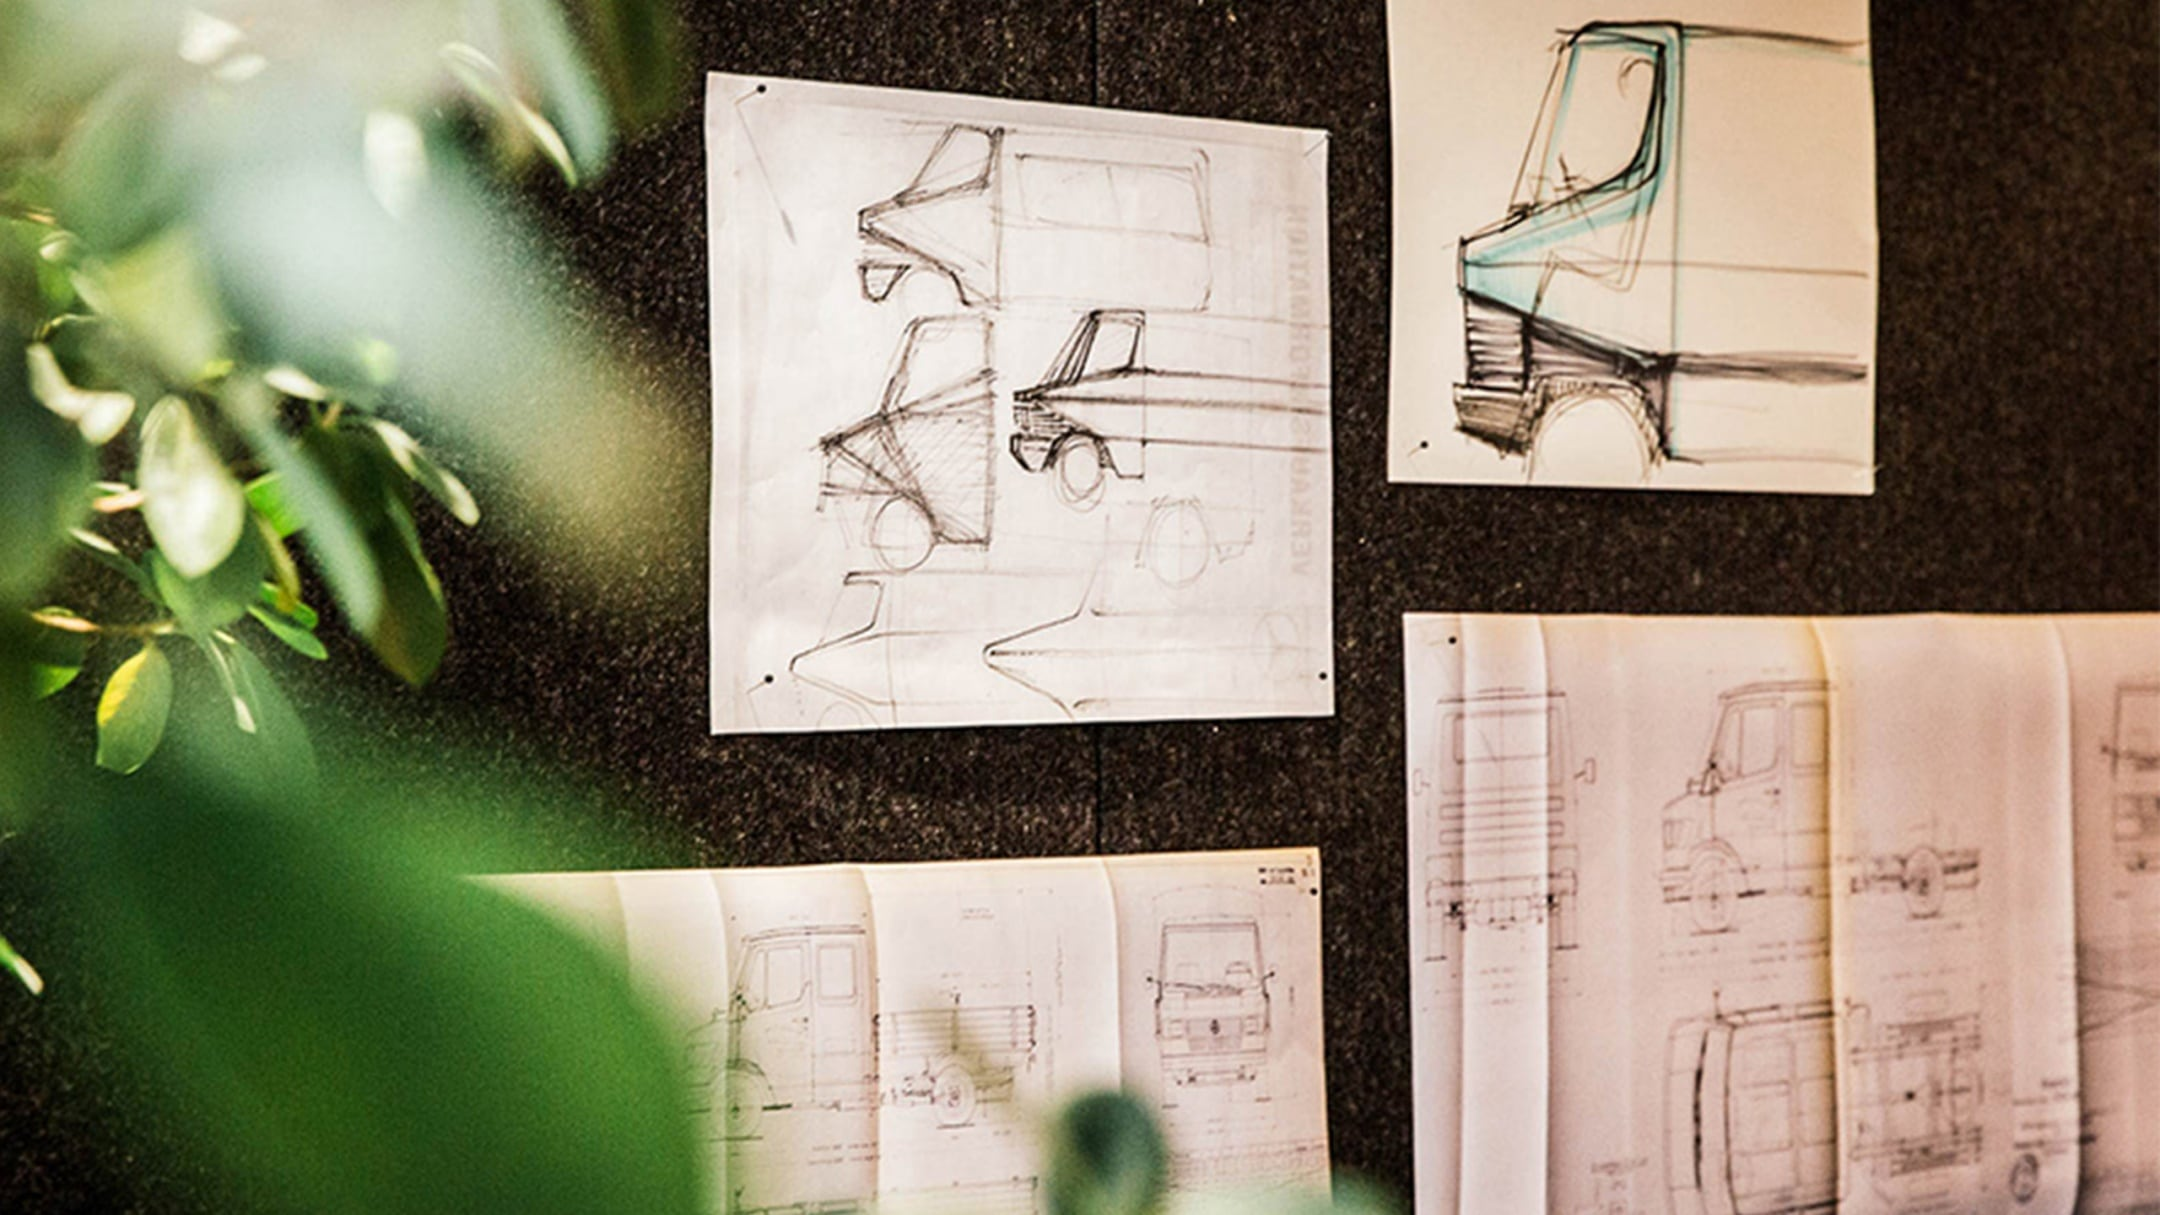 Drawings and plans of the Mercedes-Benz T1 on a pin-board